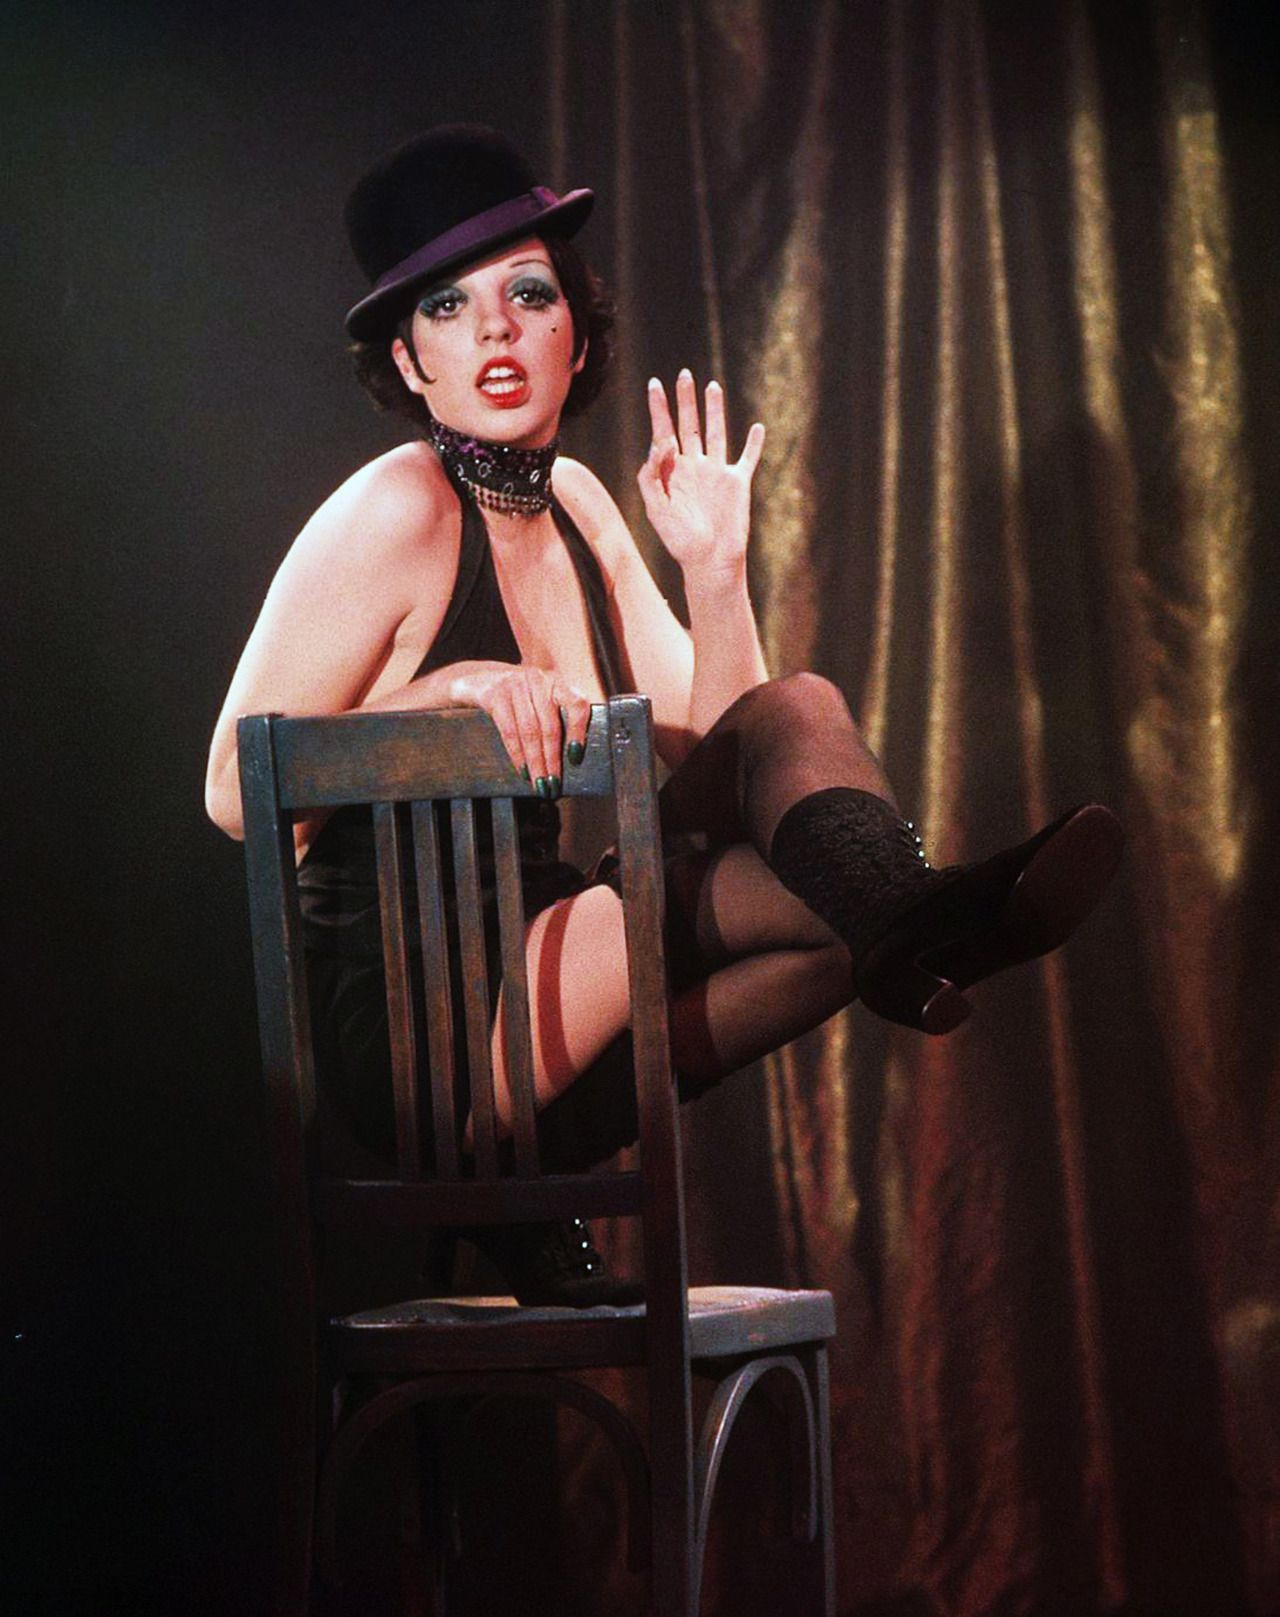 Liza Minelli As Sally Bowles In Cabaret Movies Music People I